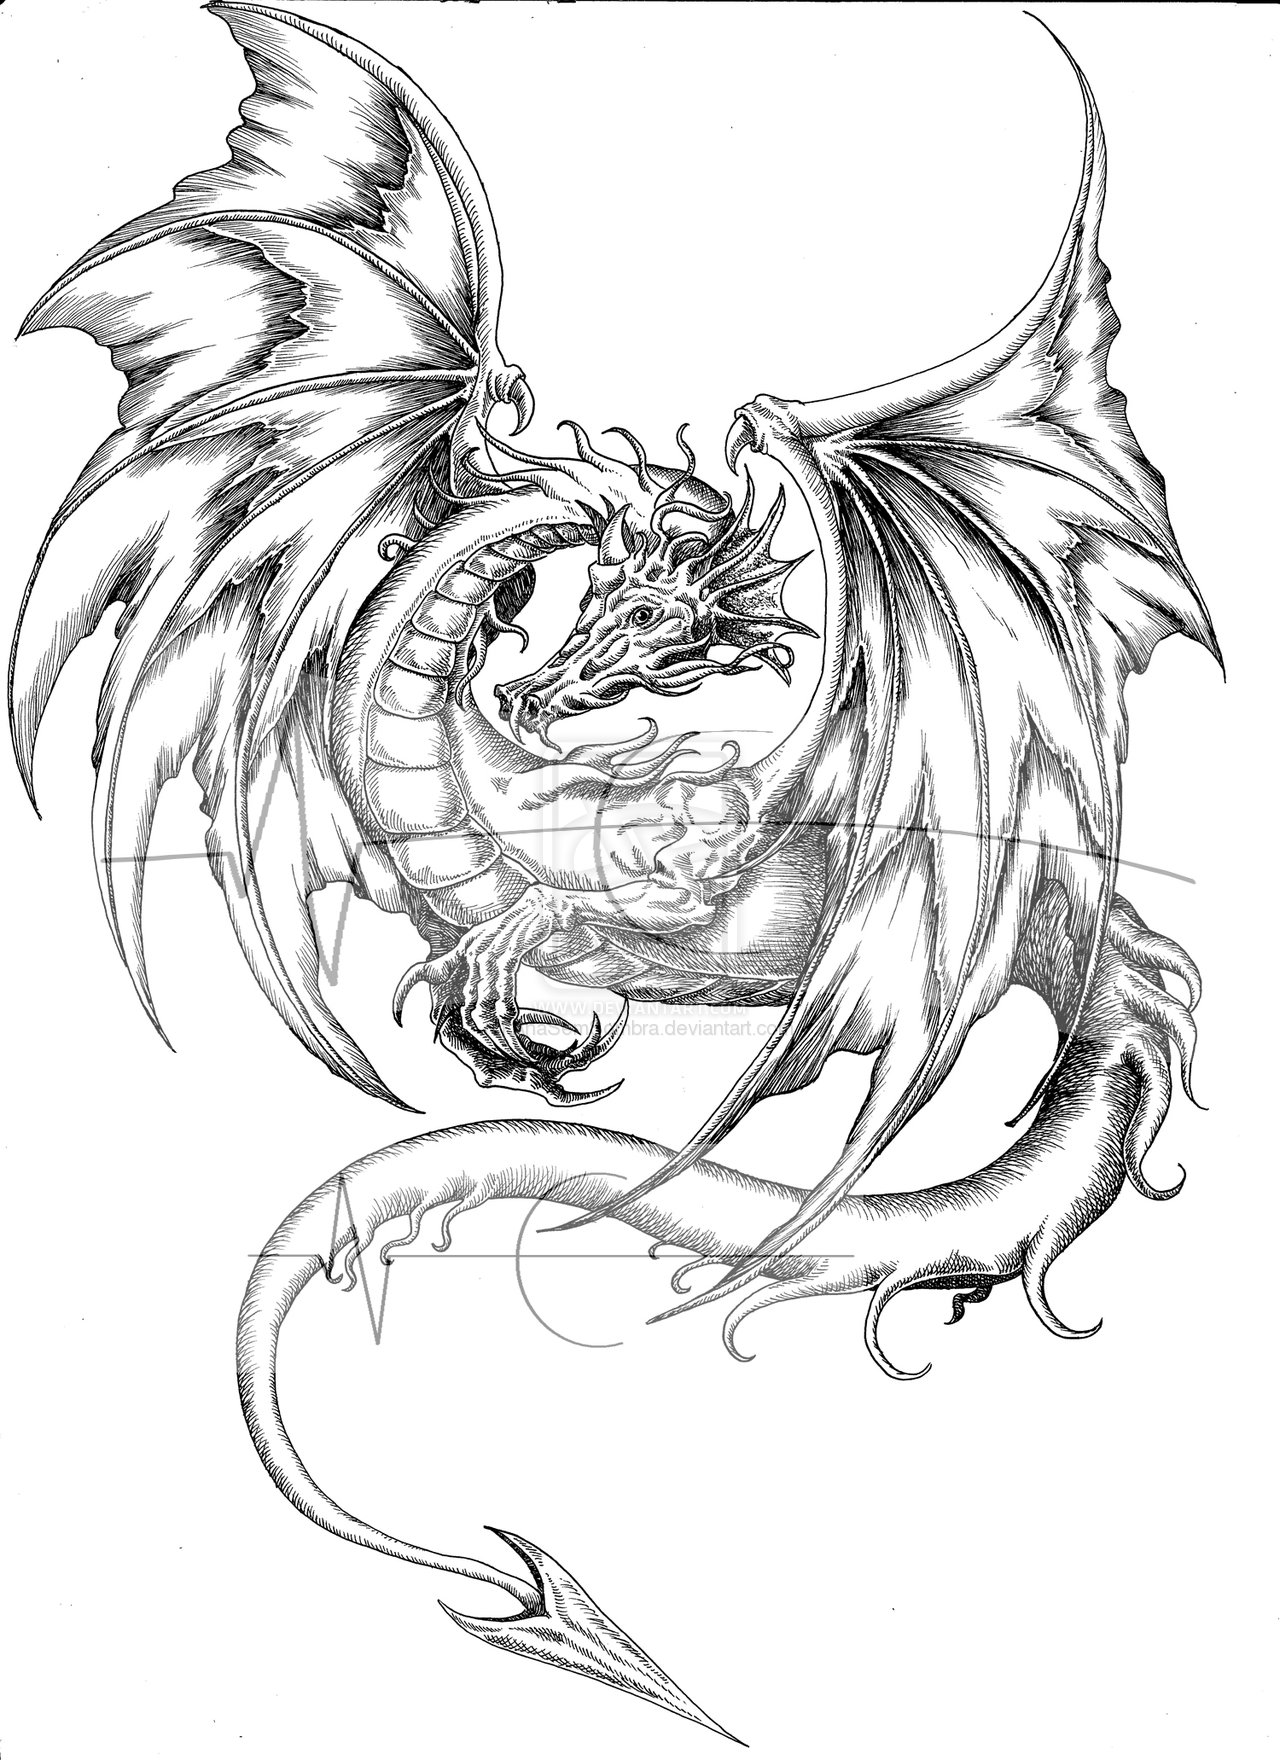 Detailed Dragon Drawing At Getdrawings Com Free For Personal Use